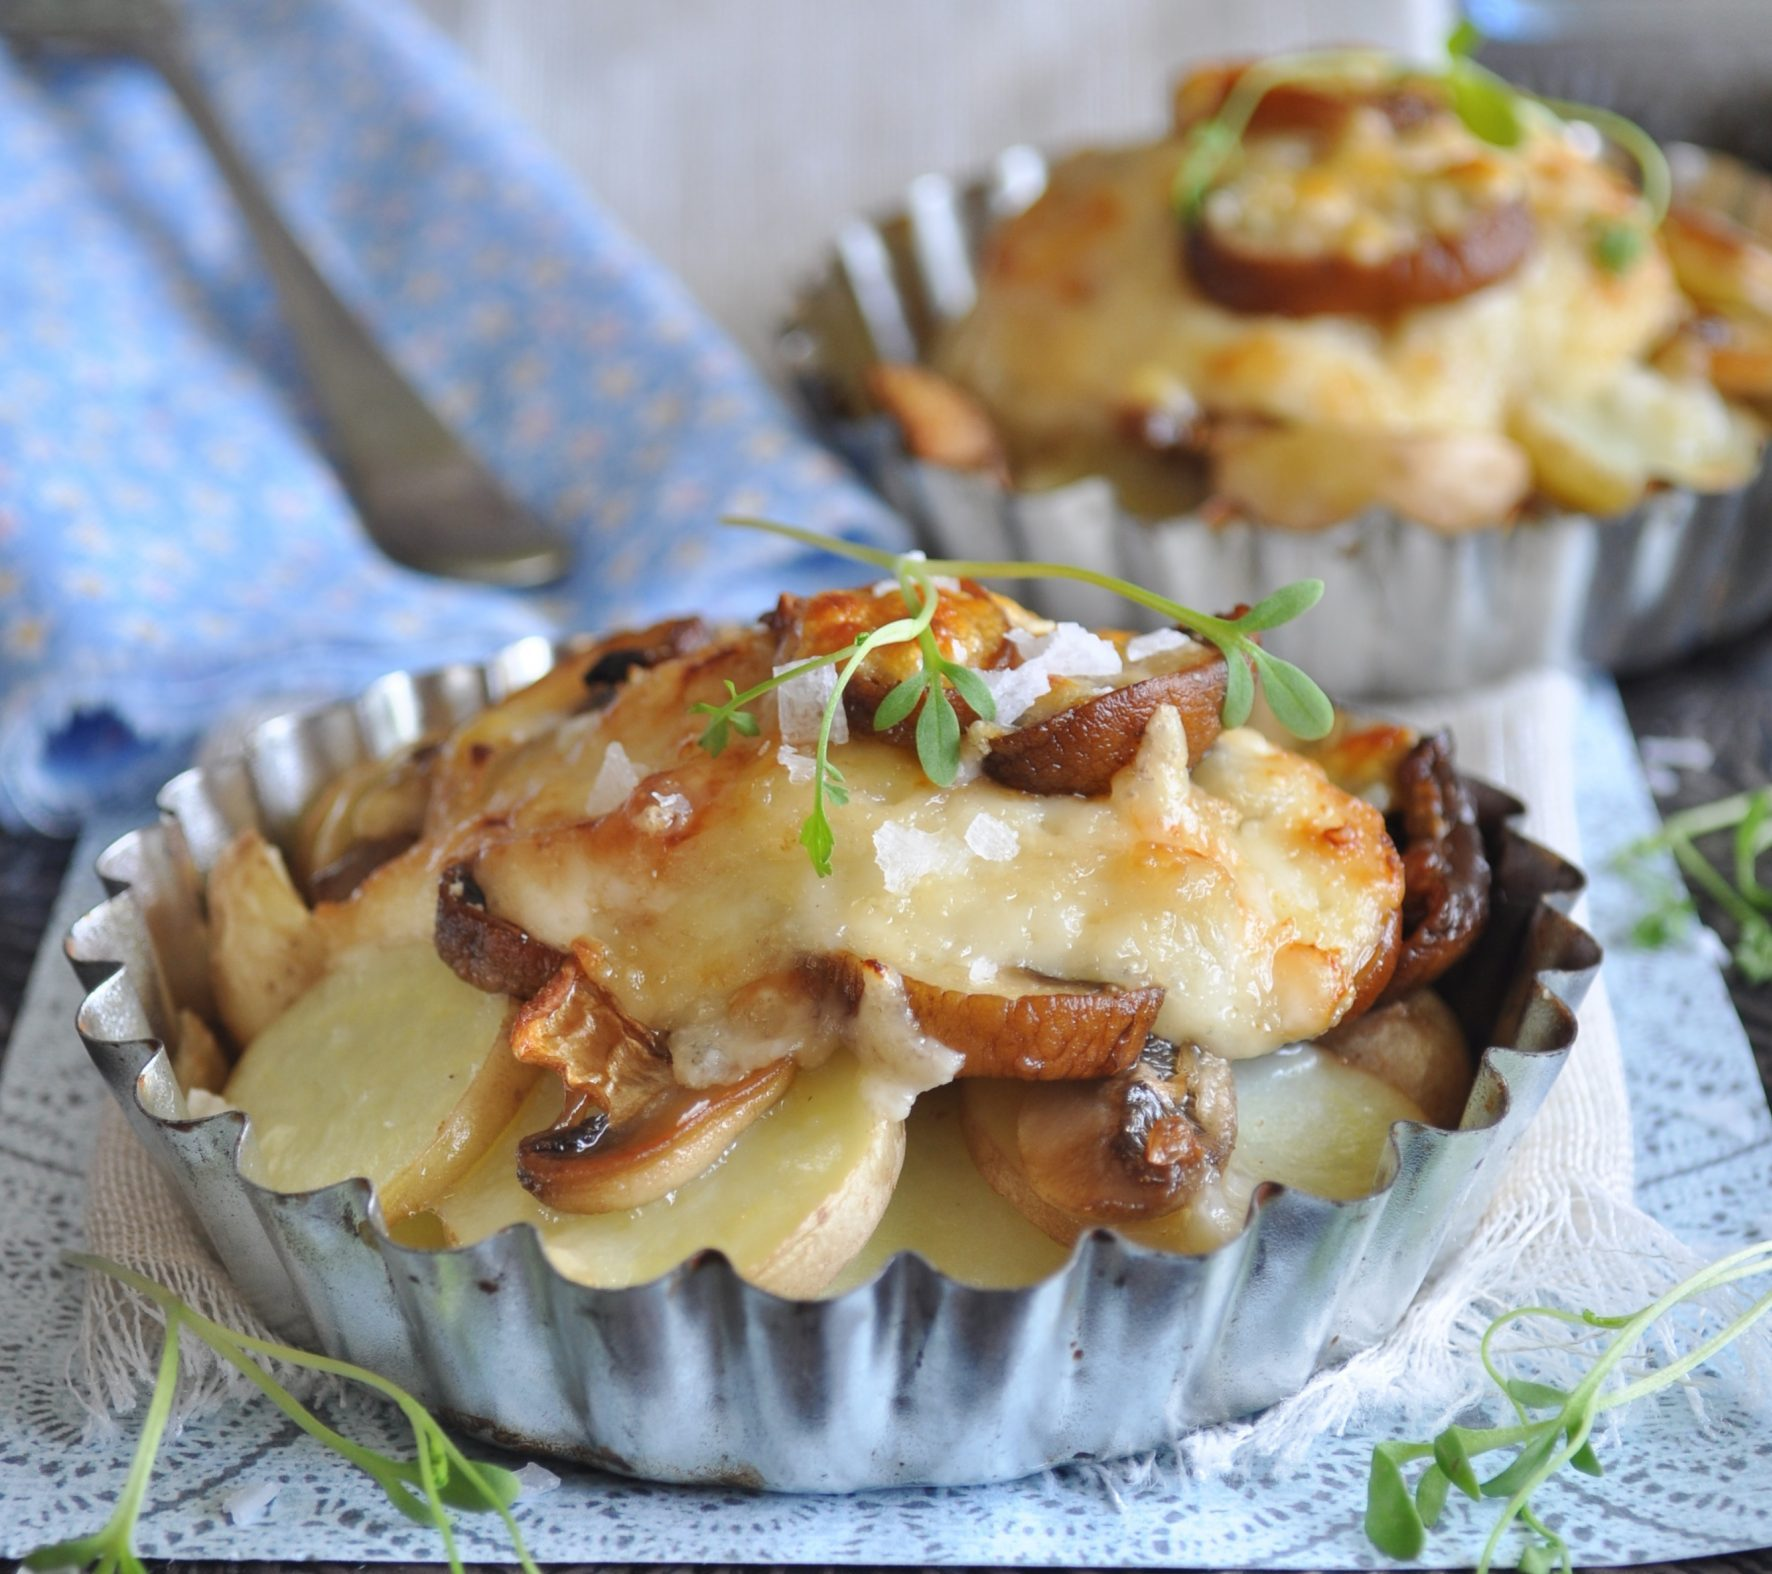 FOOD: Mushroom Potato Bake Recipe By Gina